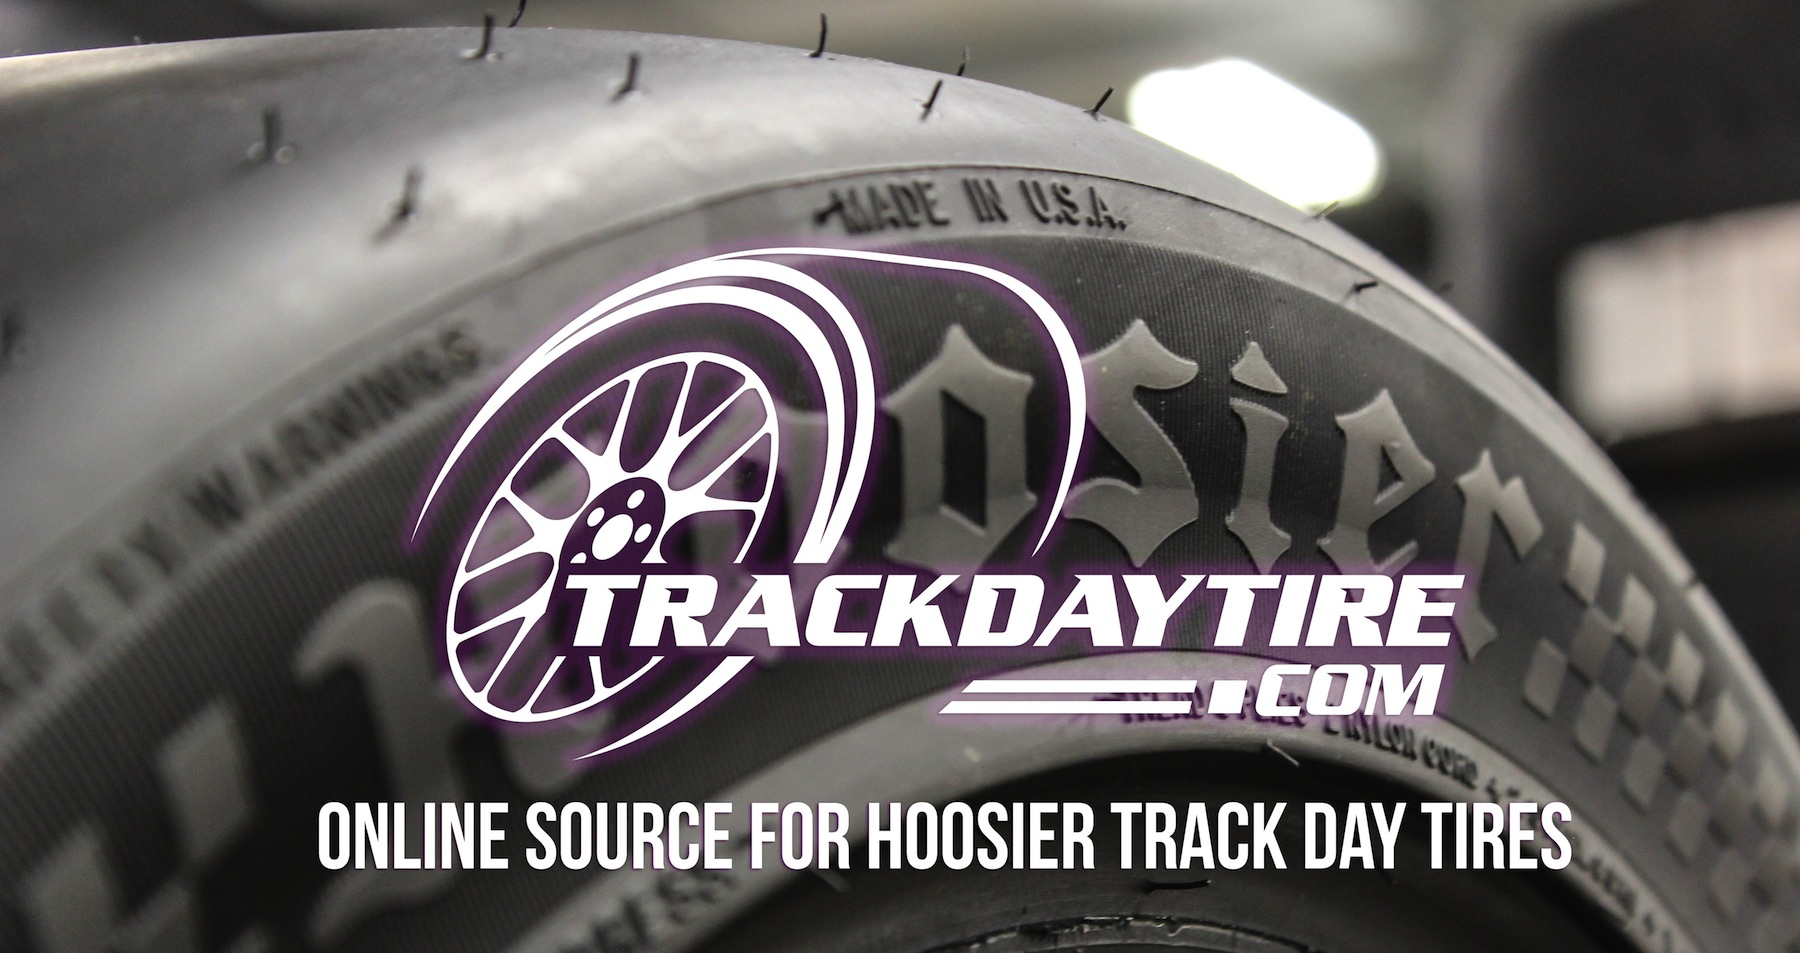 SCDA- Track Day Tire partners with SCDA to bring you Hoosiers at a discounted rate